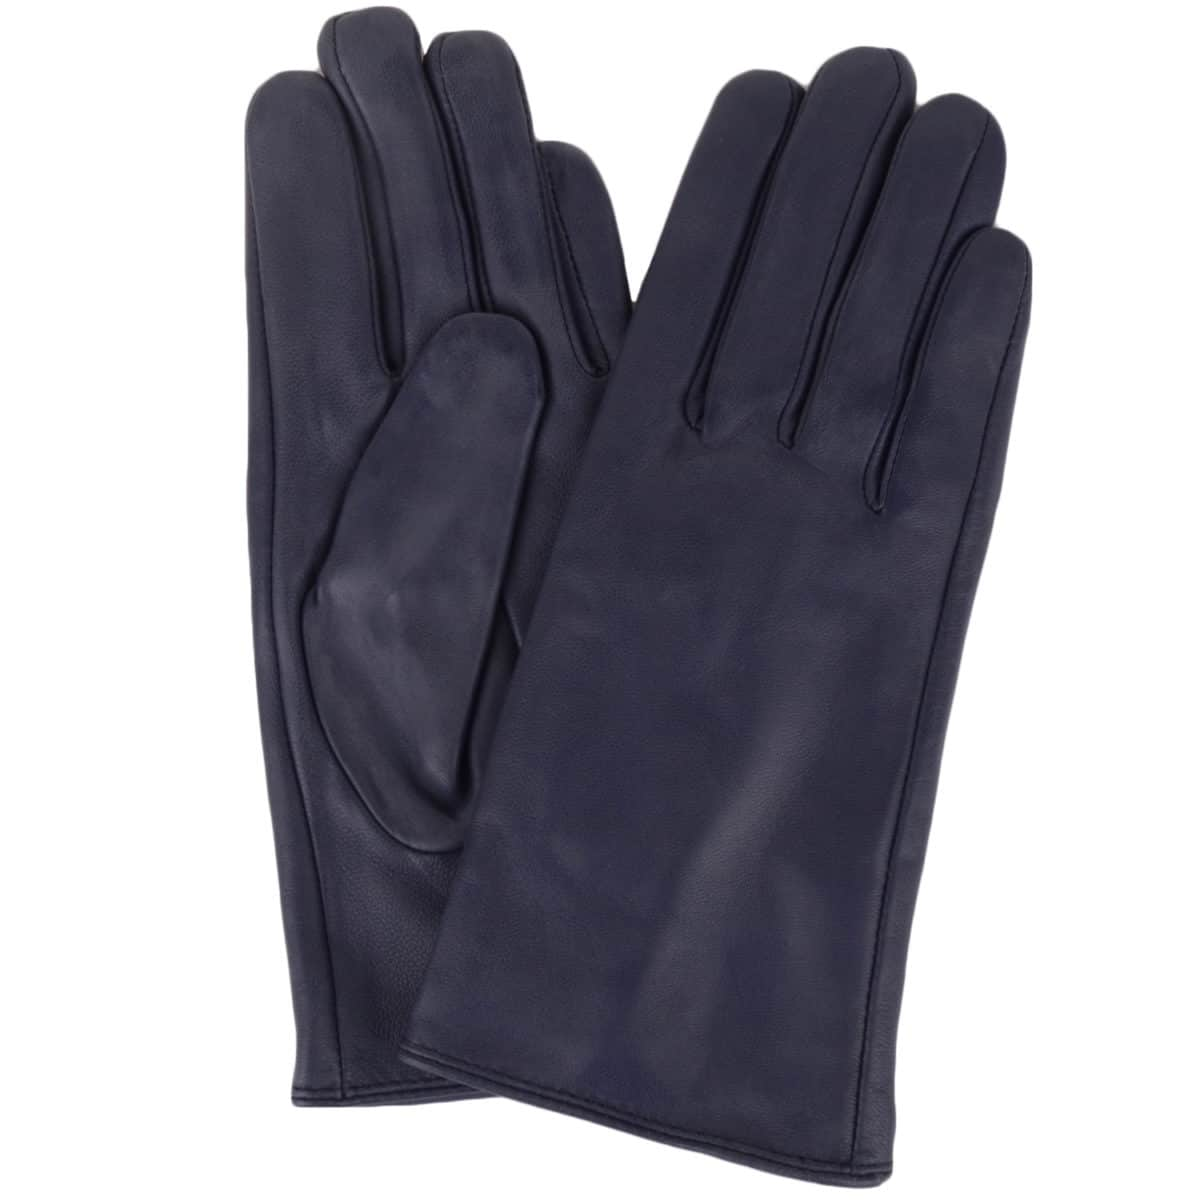 e9ca070809e54 Ladies Leather Gloves Navy - Snugrugs